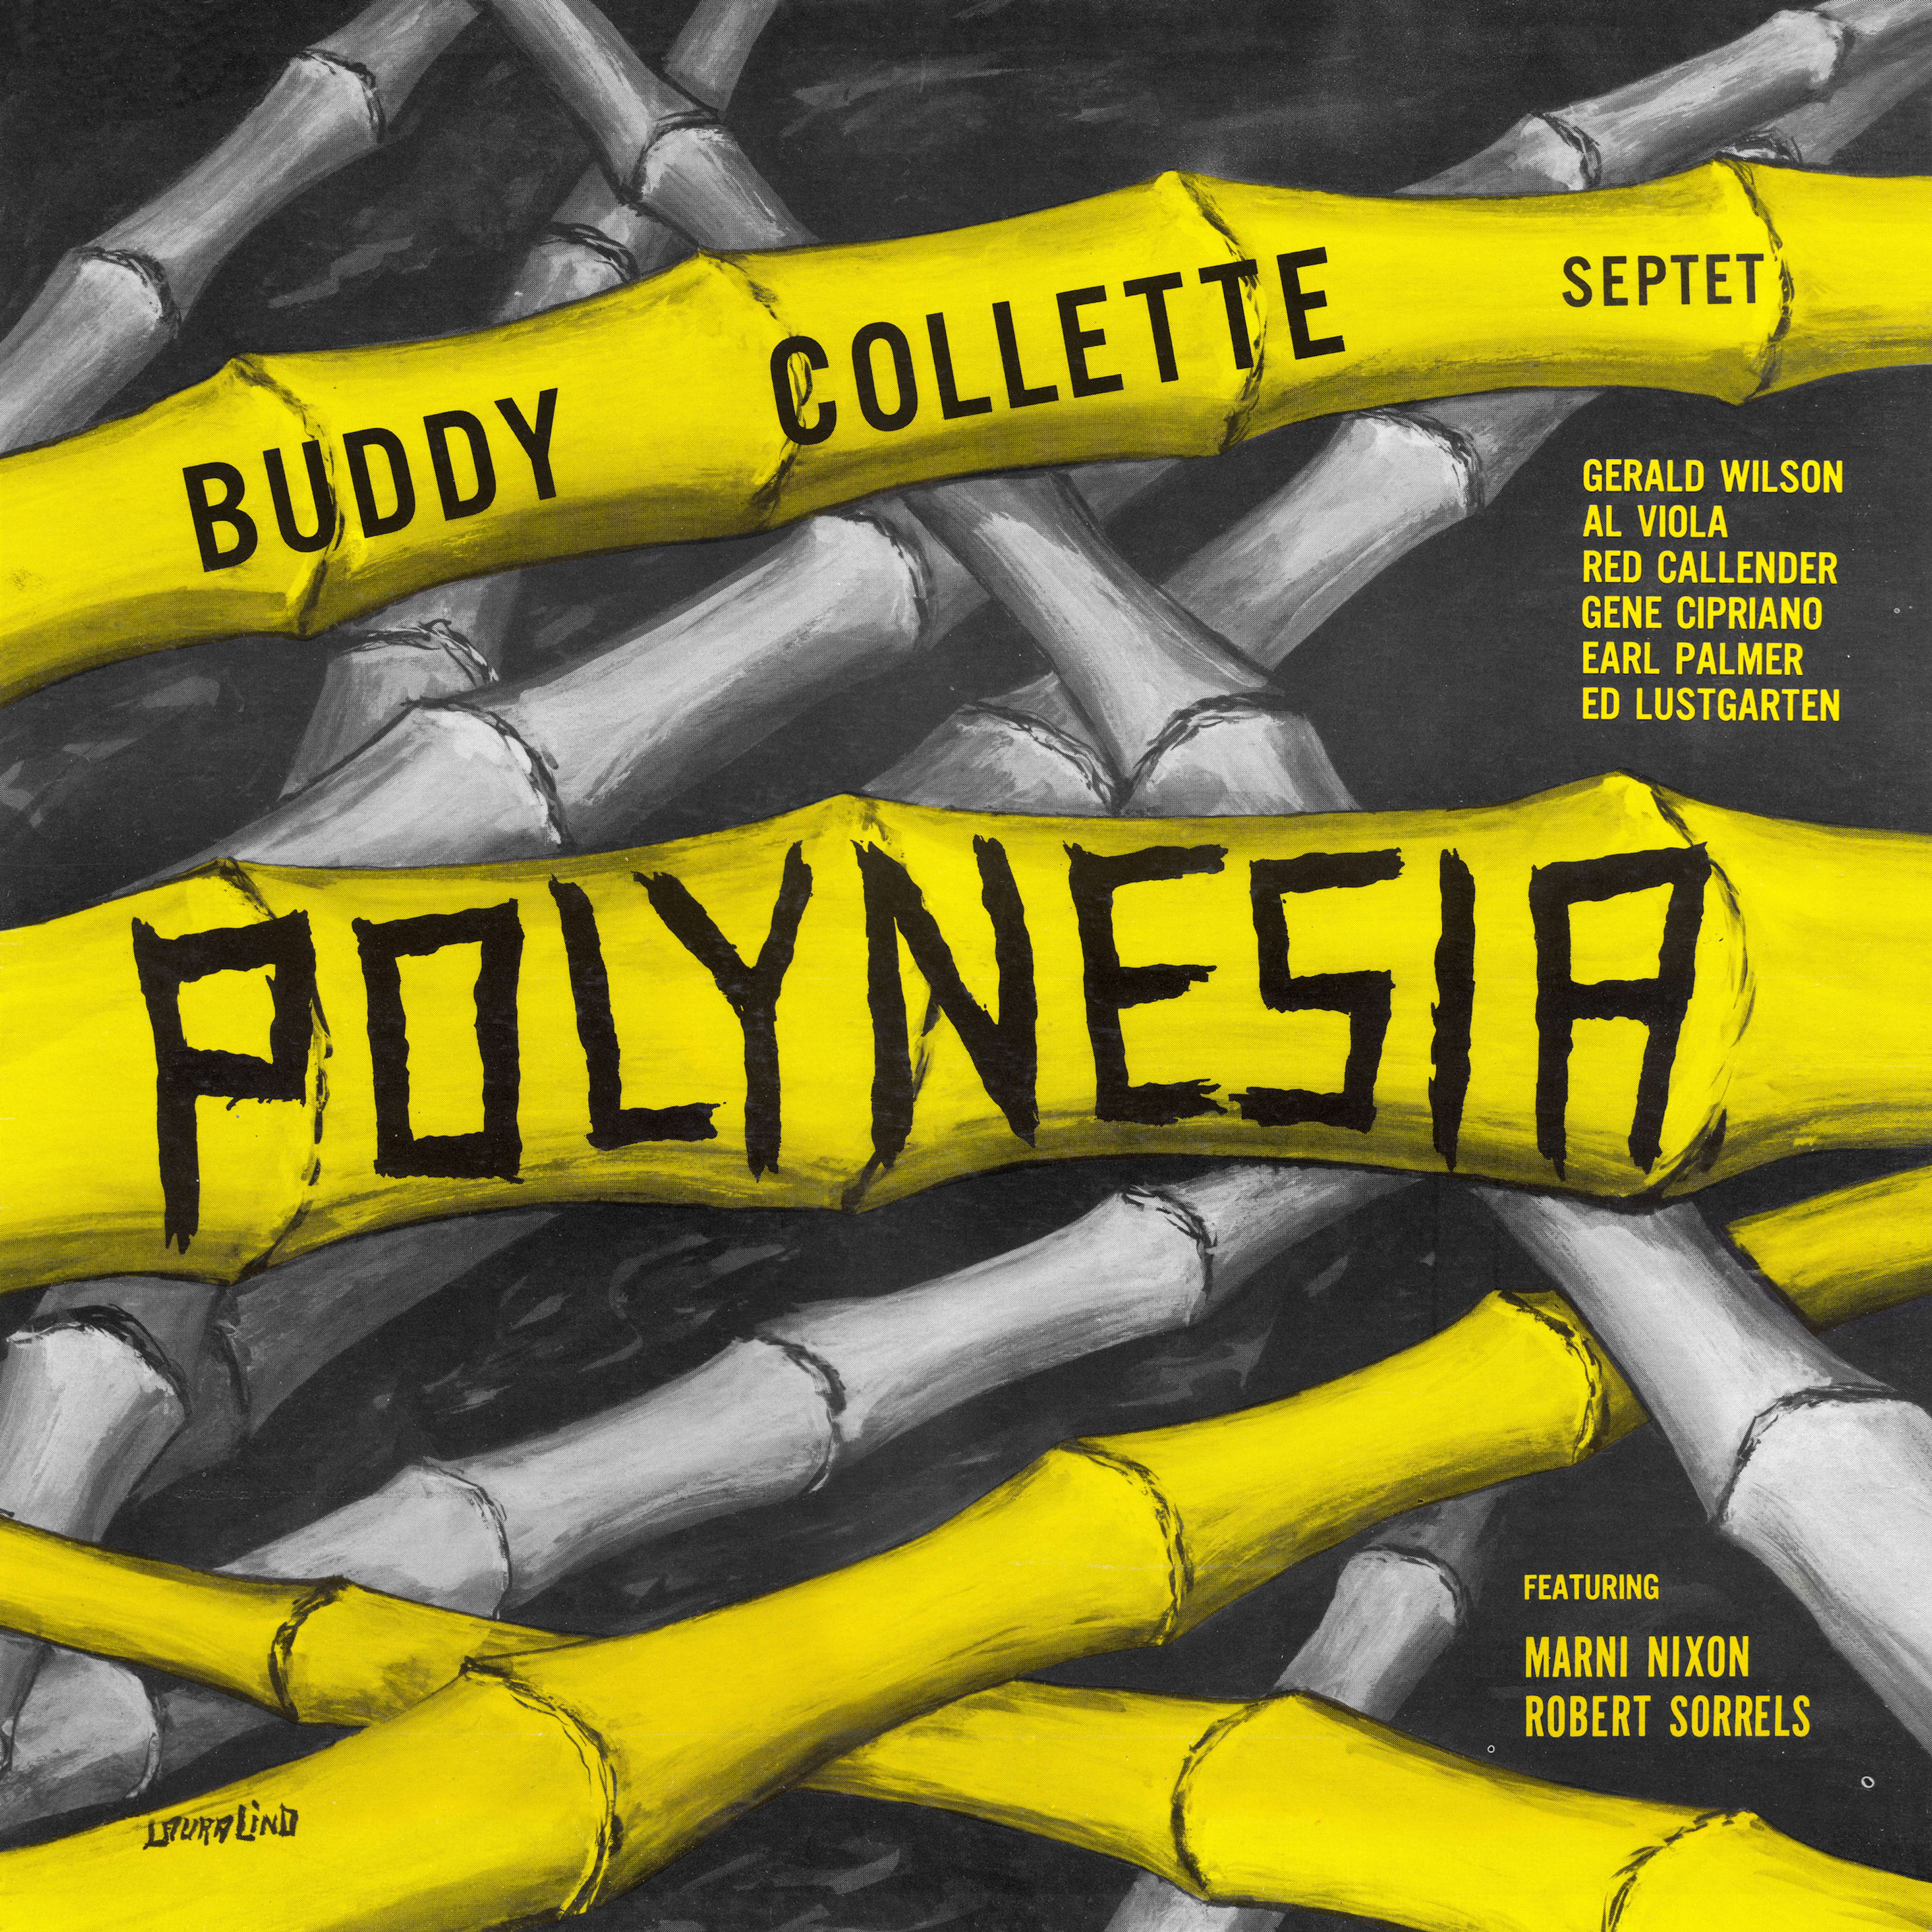 Buddy Collette Septet with Marni Nixon & Robert Sorrels - Polynesia